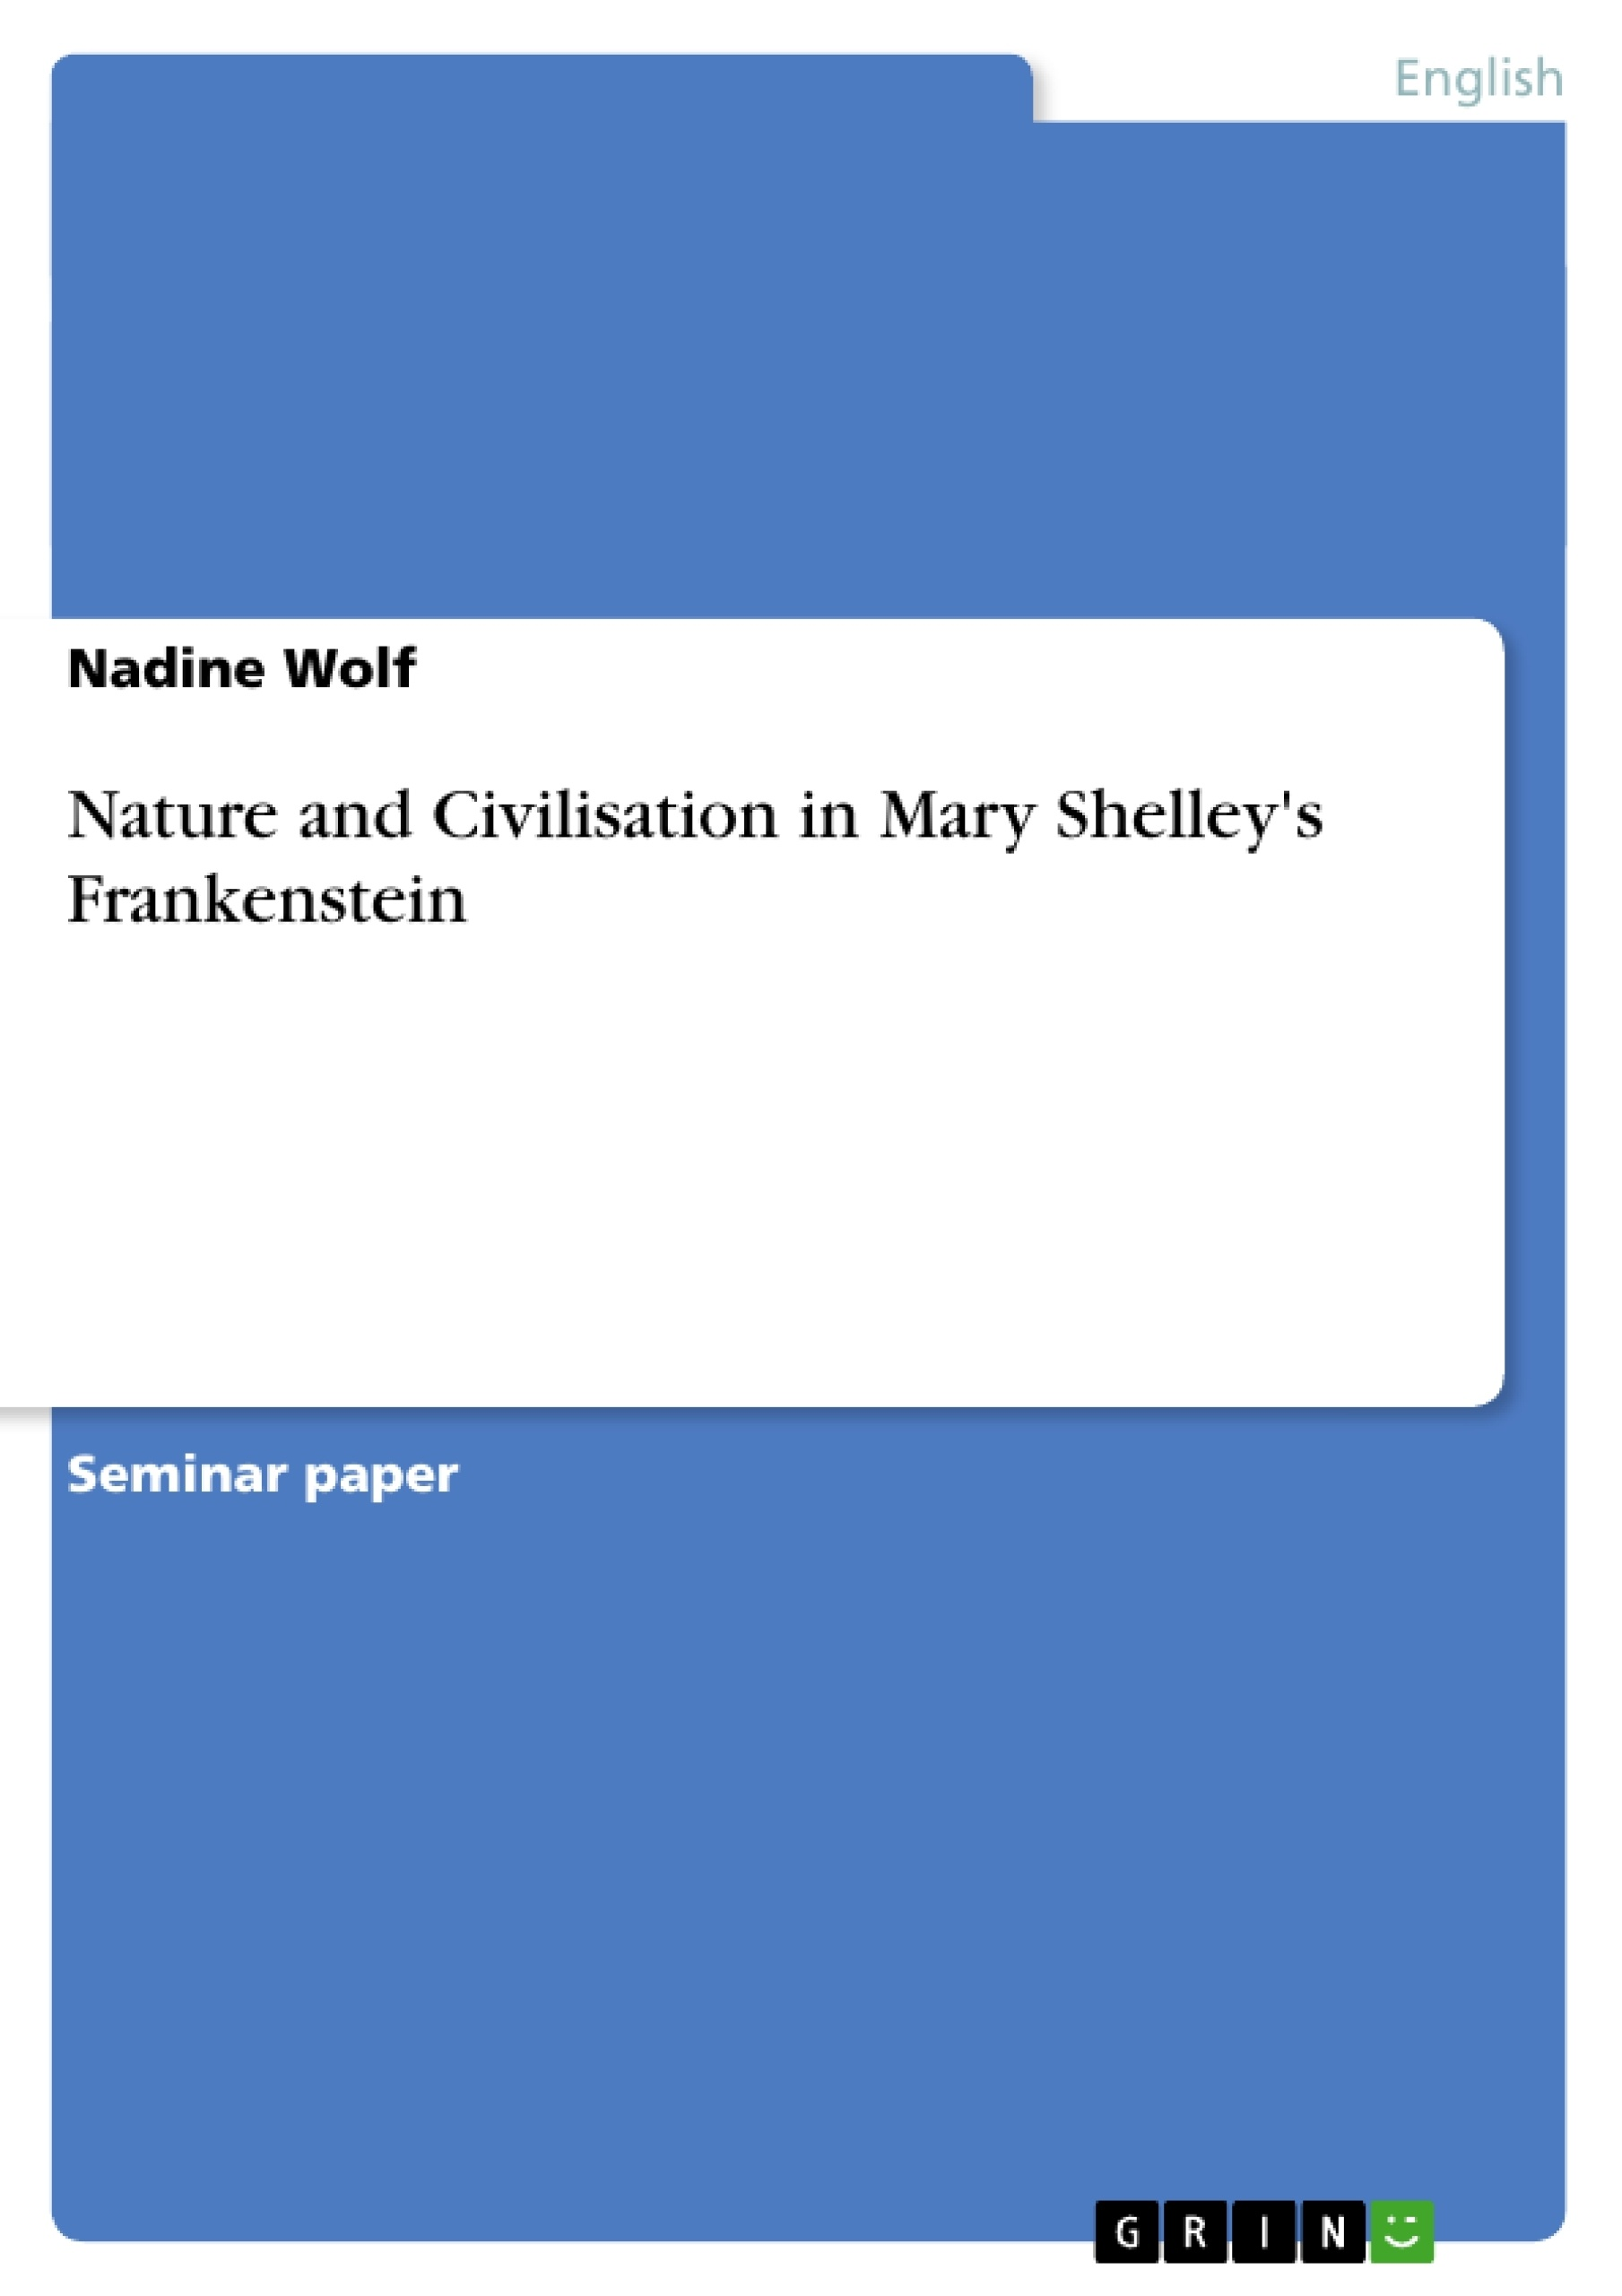 Title: Nature and Civilisation in Mary Shelley's Frankenstein